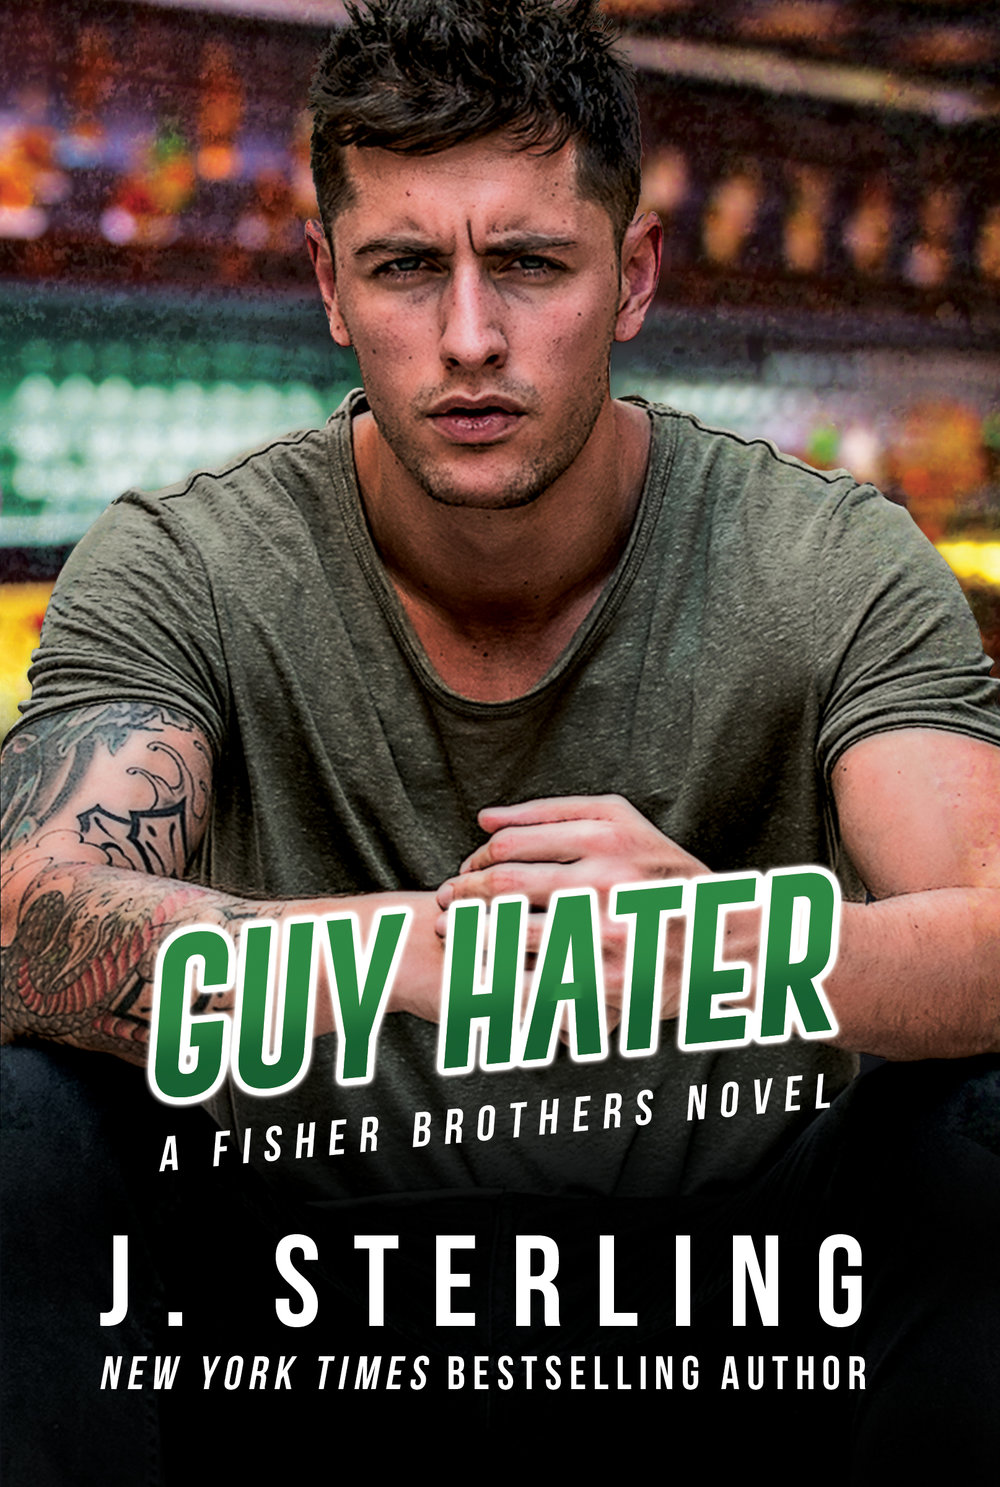 Guy Hater Synopsis: From New York Times Bestseller, J. Sterling, comes a sexy new STANDALONE romance novel. Frank Fisher is quiet, pensive, and sexy as hell. He's also stuck in a loveless relationship, bound by a promise he made years ago. It's one he intends to keep, no matter the cost. The night Claudia walks into his bar, both his life and his perspective are forever changed. She's feisty, strong, independent and everything he never knew he needed. She's also everything he never knew he wanted, and now he's torn. Will Frank follow his heart, or will guilt and obligation continue to rule his life? Choices aren't always easy, especially when you're a man, and Frank's indecision may cost him more than he's willing to lose. Buy Links: Amazon US ~ Amazon UK  ~ Amazon AU  ~ Amazon CA